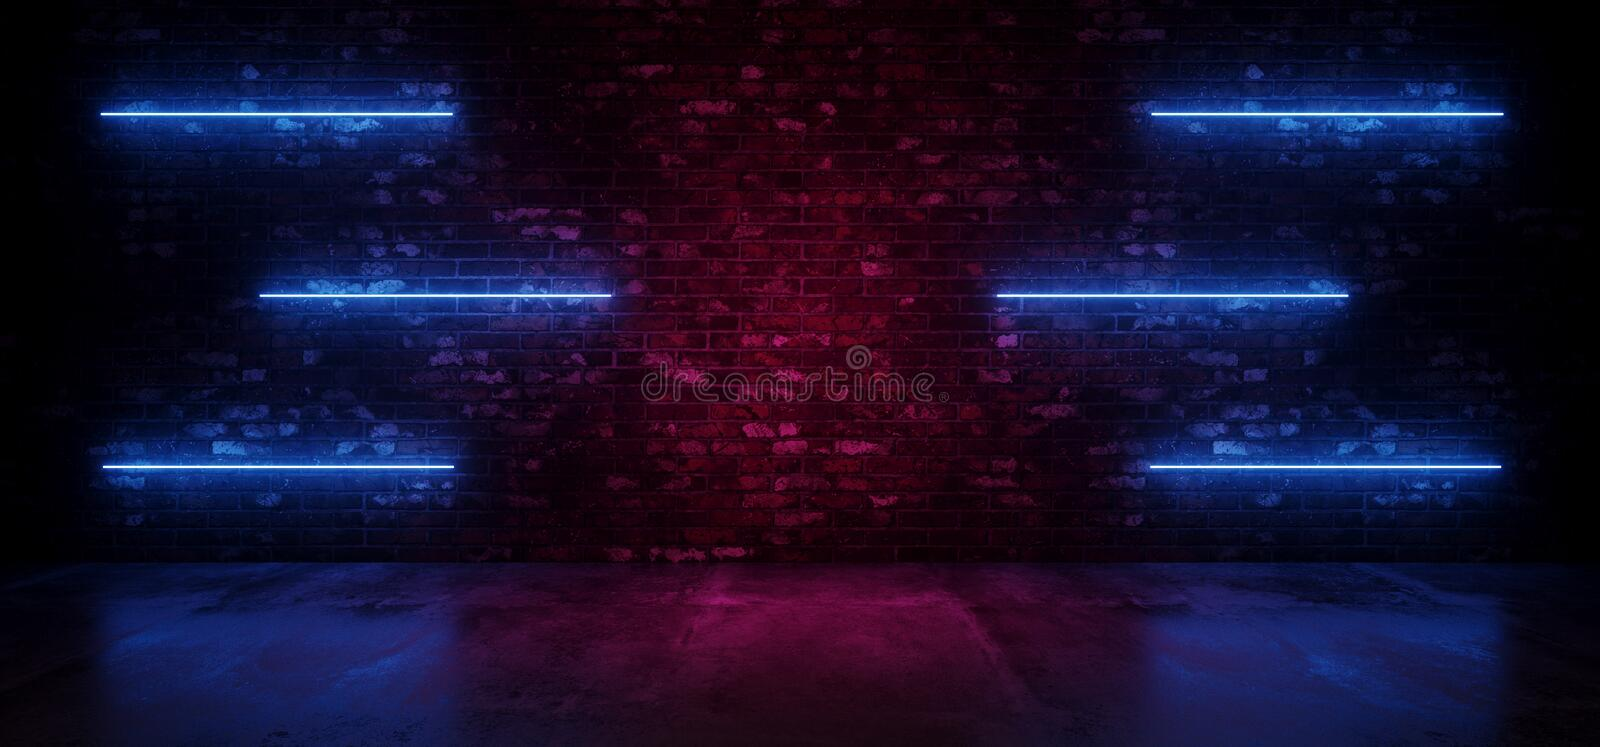 Retro Neon Sci Fi Modern Futuristic Neon Glowing Blue Line Lights On Grunge Brick Purple Glowing Wall Concrete Reflection Floor royalty free illustration